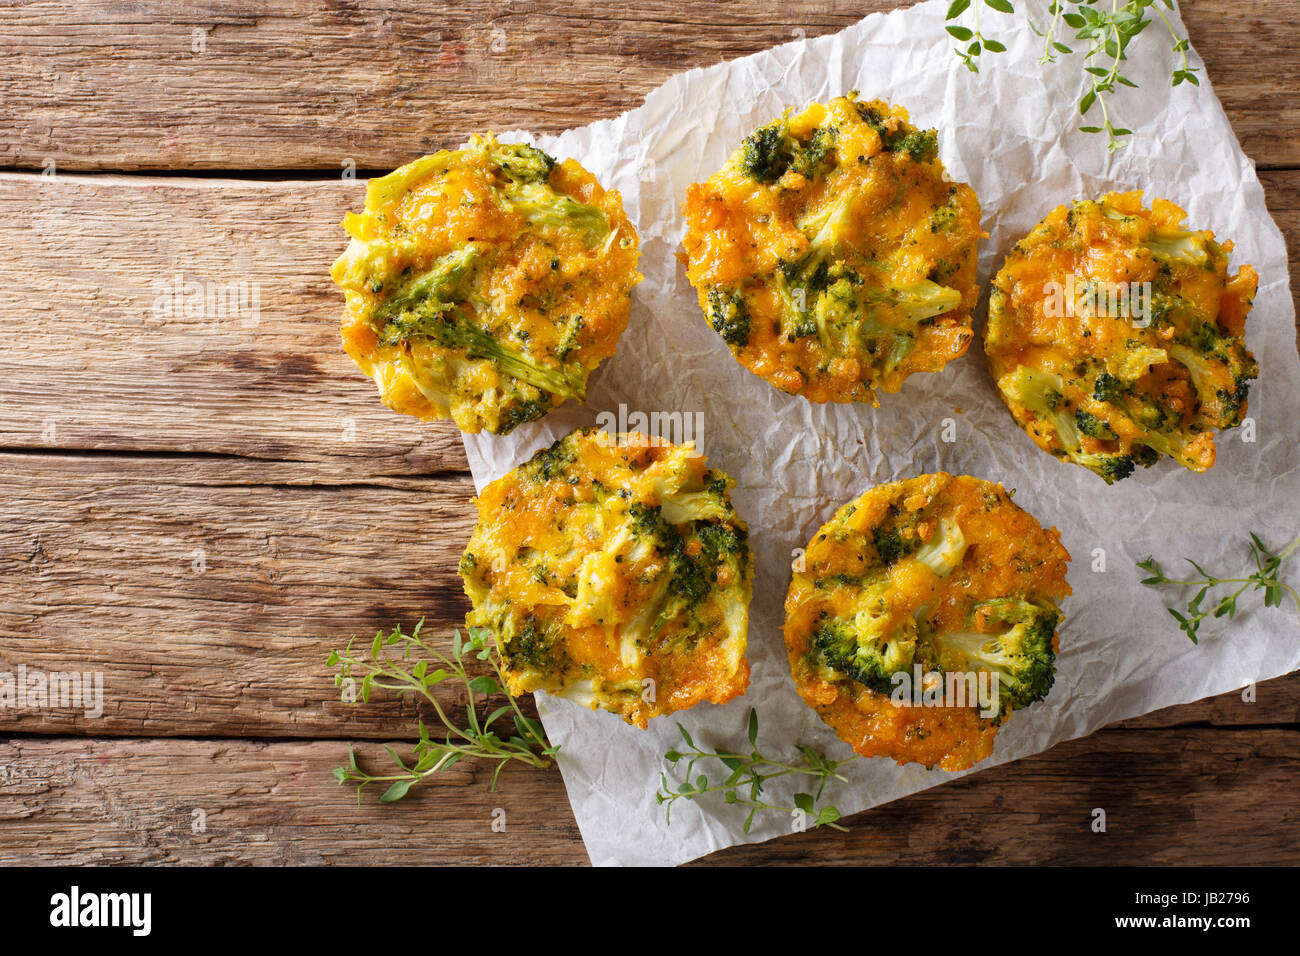 Broccoli Muffins with cheddar cheese and thyme close-up on the table. horizontal view from above - Stock Image